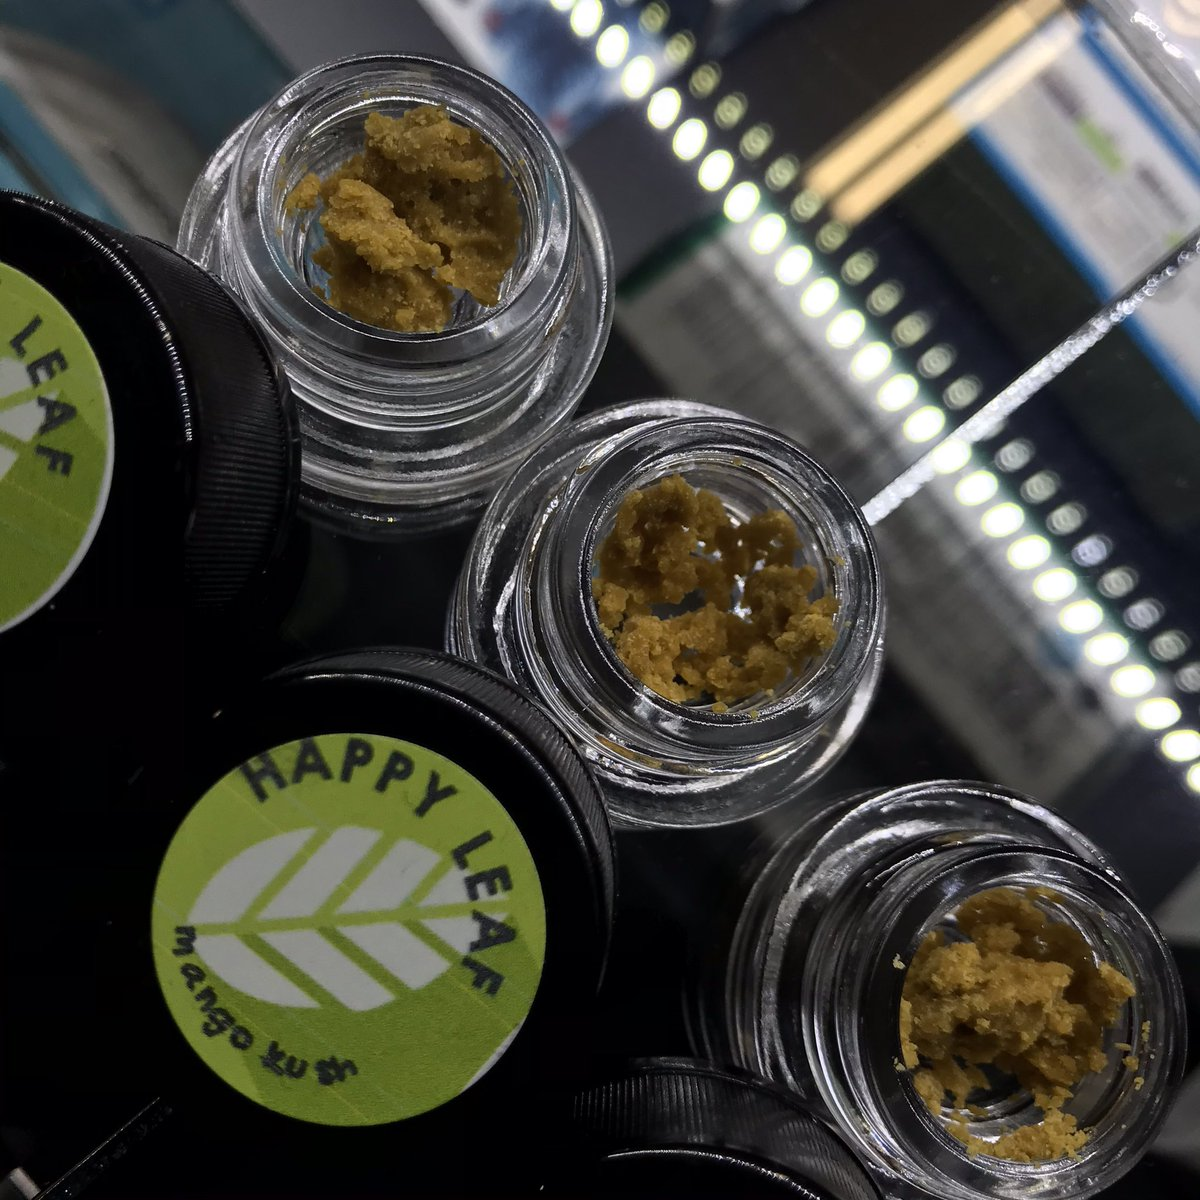 #HappyLeaf #crumble is a good quality #wax #crumble available in 1/2 #grams and #full. So #smooth and #tasteful with each #dab. Only the most #top #exclusive strains available! #dabbs #dabberdaily #Rigged https://t.co/U5LgGLkfUB